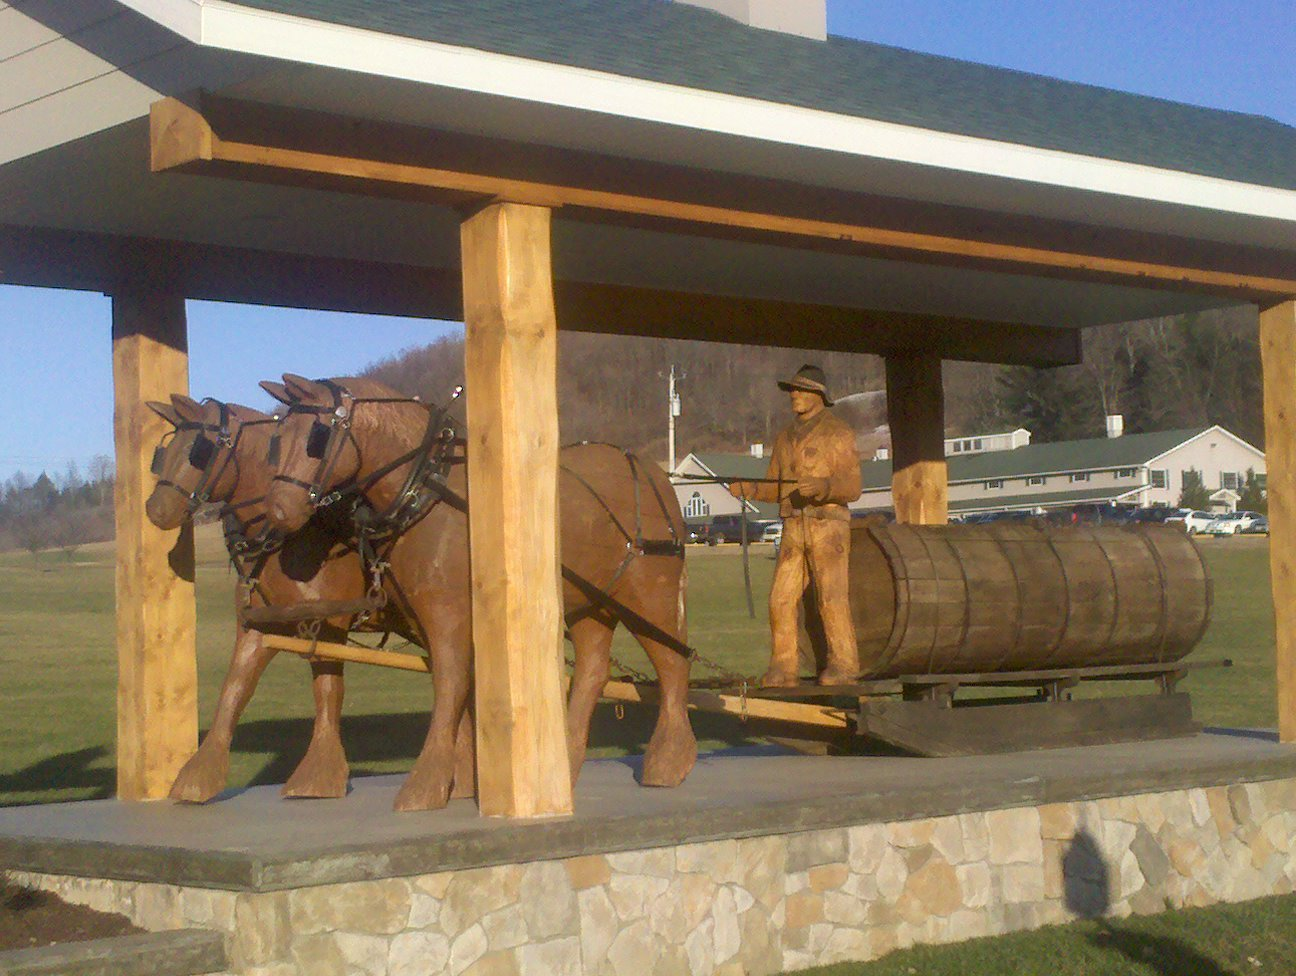 Wooden Sculptures of work horses pulling sap sled and farmer